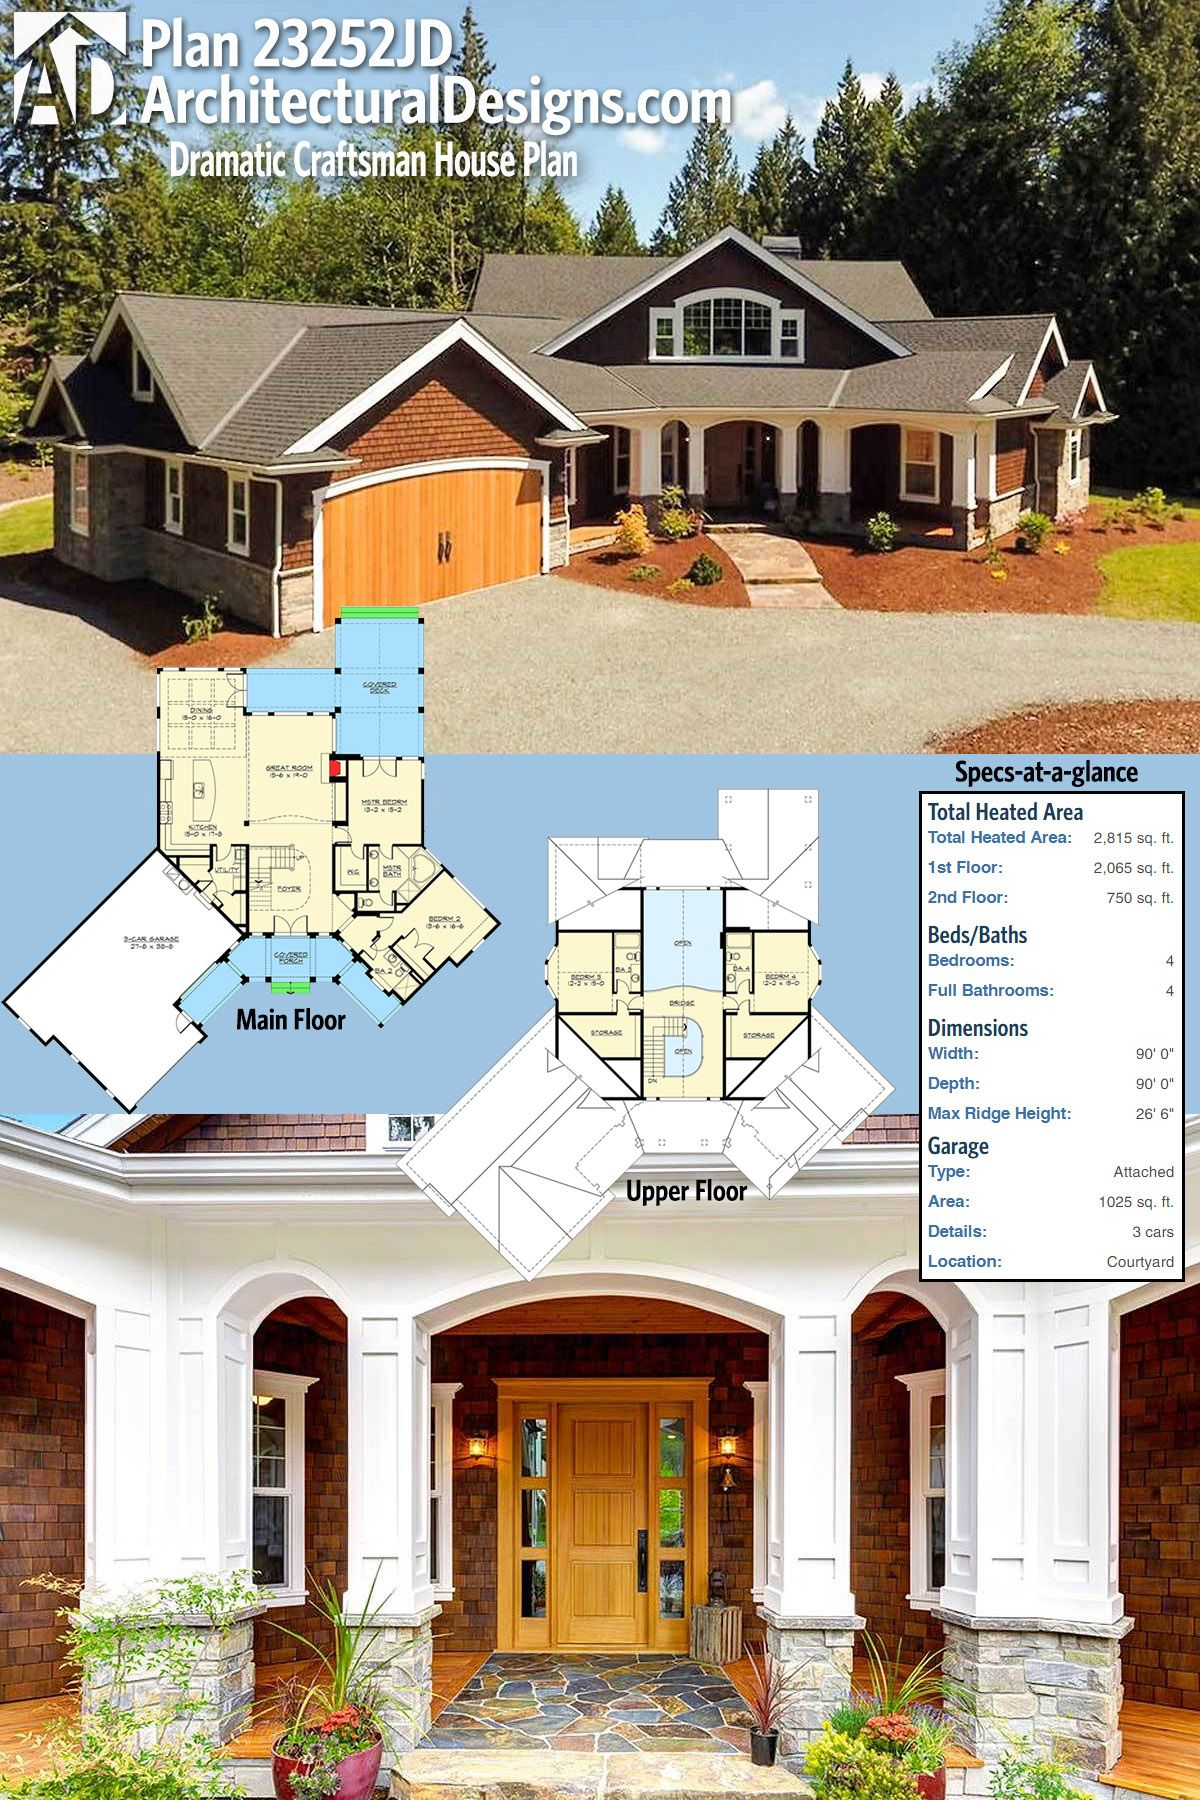 craftsman house plans 3000 sq ft. b21a81637547090c2cf637b49987e796 jpg Plan 23252JD  Dramatic Craftsman House house